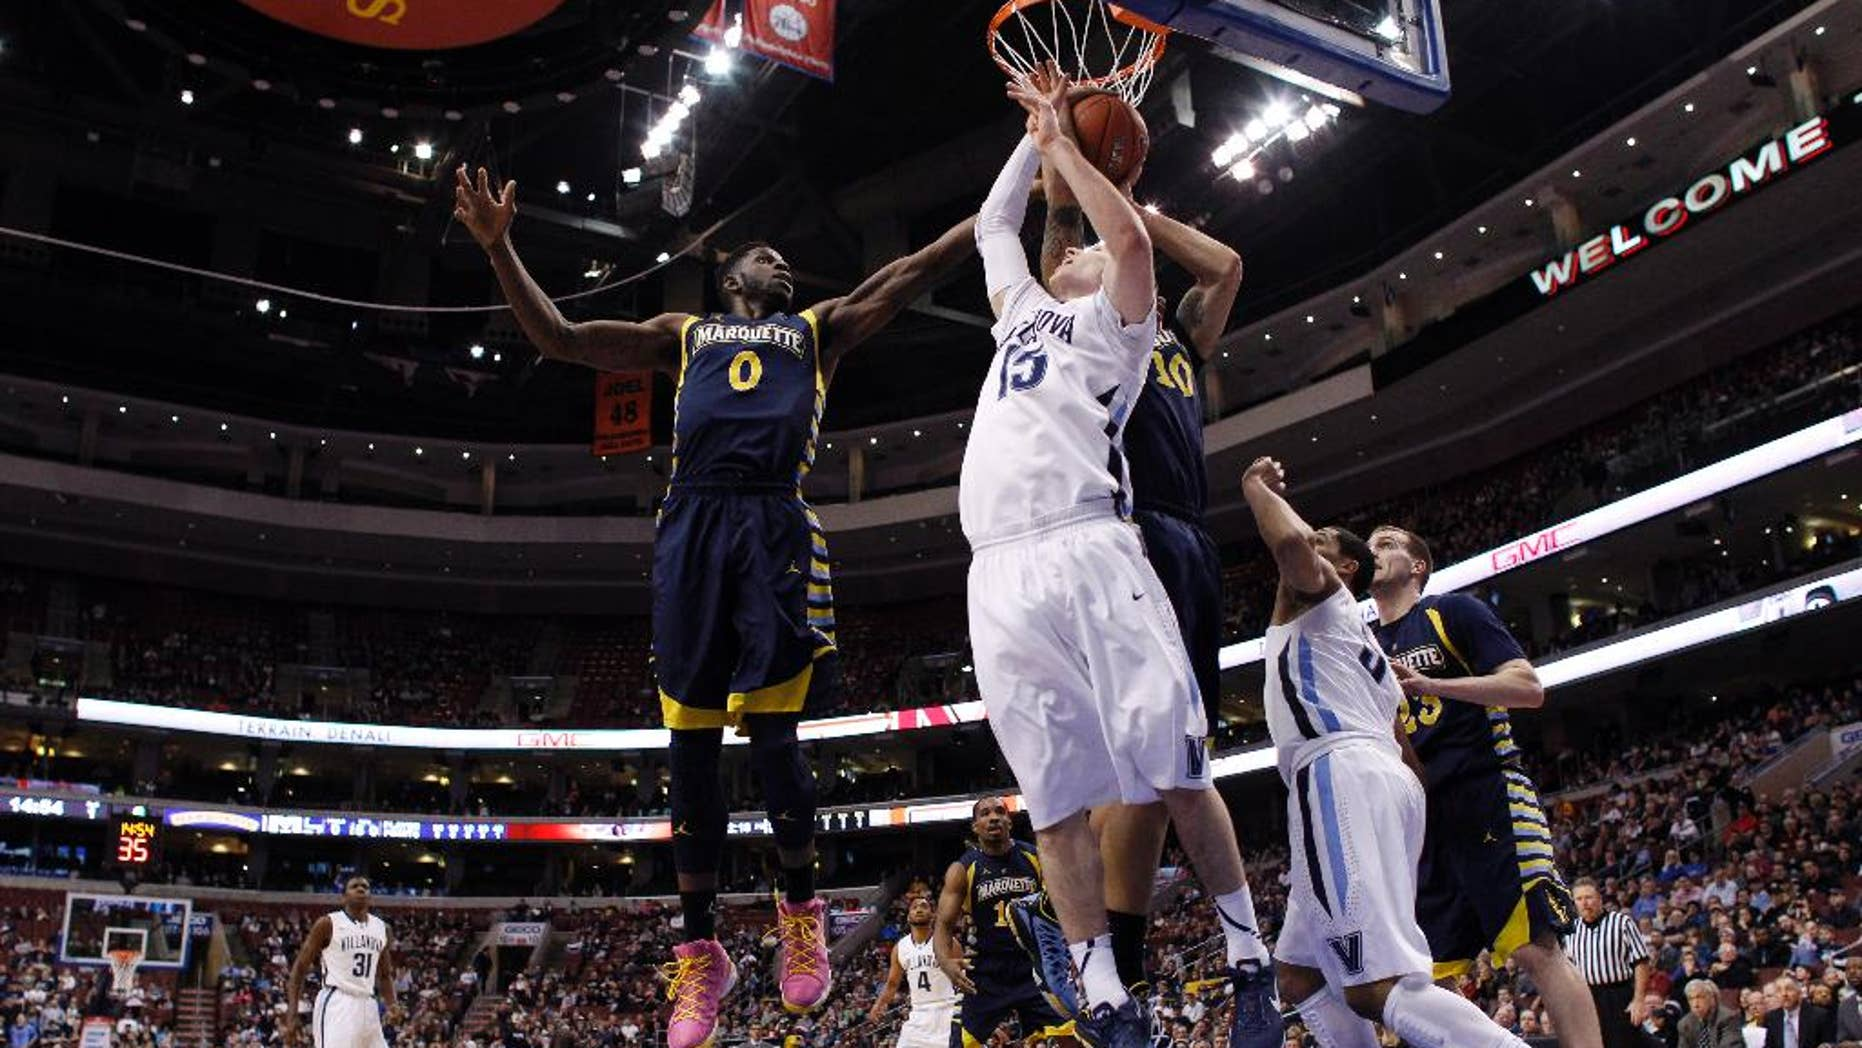 Villanova's Ryan Arcidiacono (15) battles for a rebound against Marquette's Jamil Wilson (0) and Juan Anderson (10) during the first half of an NCAA college basketball game on Sunday, March 2, 2014, in Philadelphia. (AP Photo/Matt Slocum)